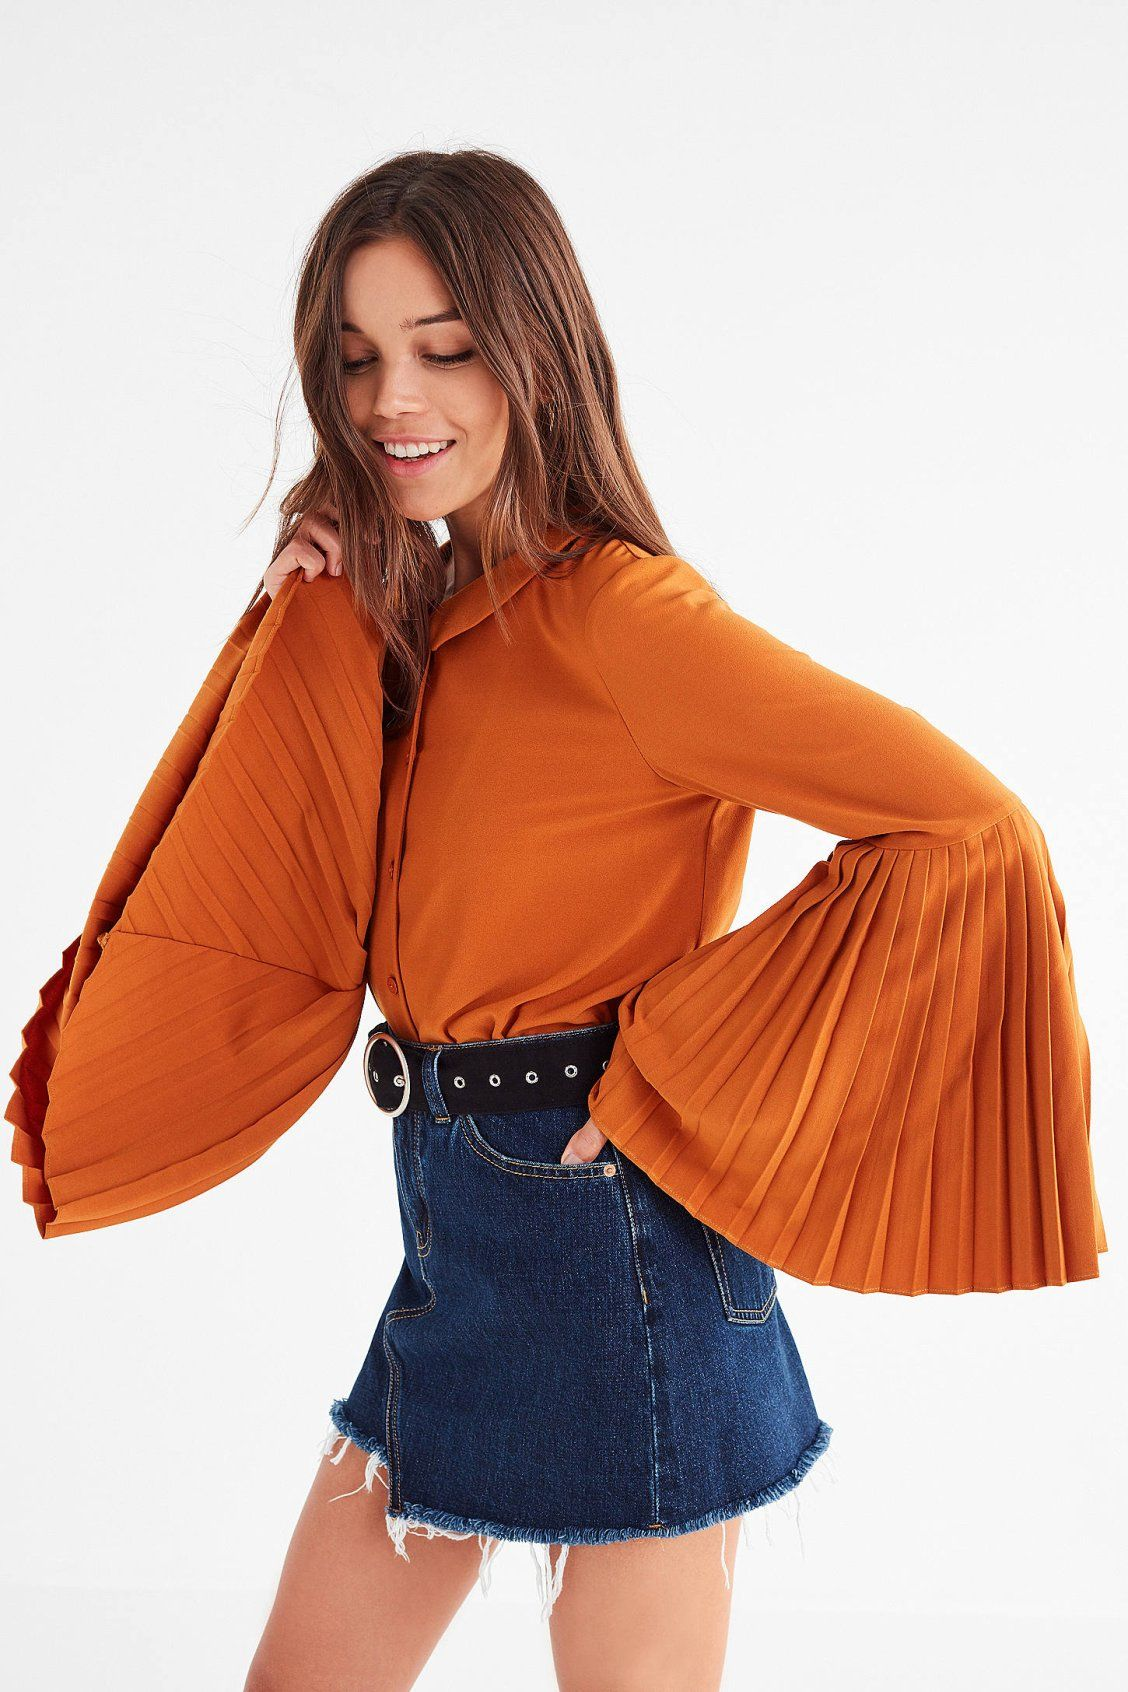 b40d7614ccd1e5 Jovonna London Tosca Pleated Bell-Sleeve Top | Urban Outfitters ...